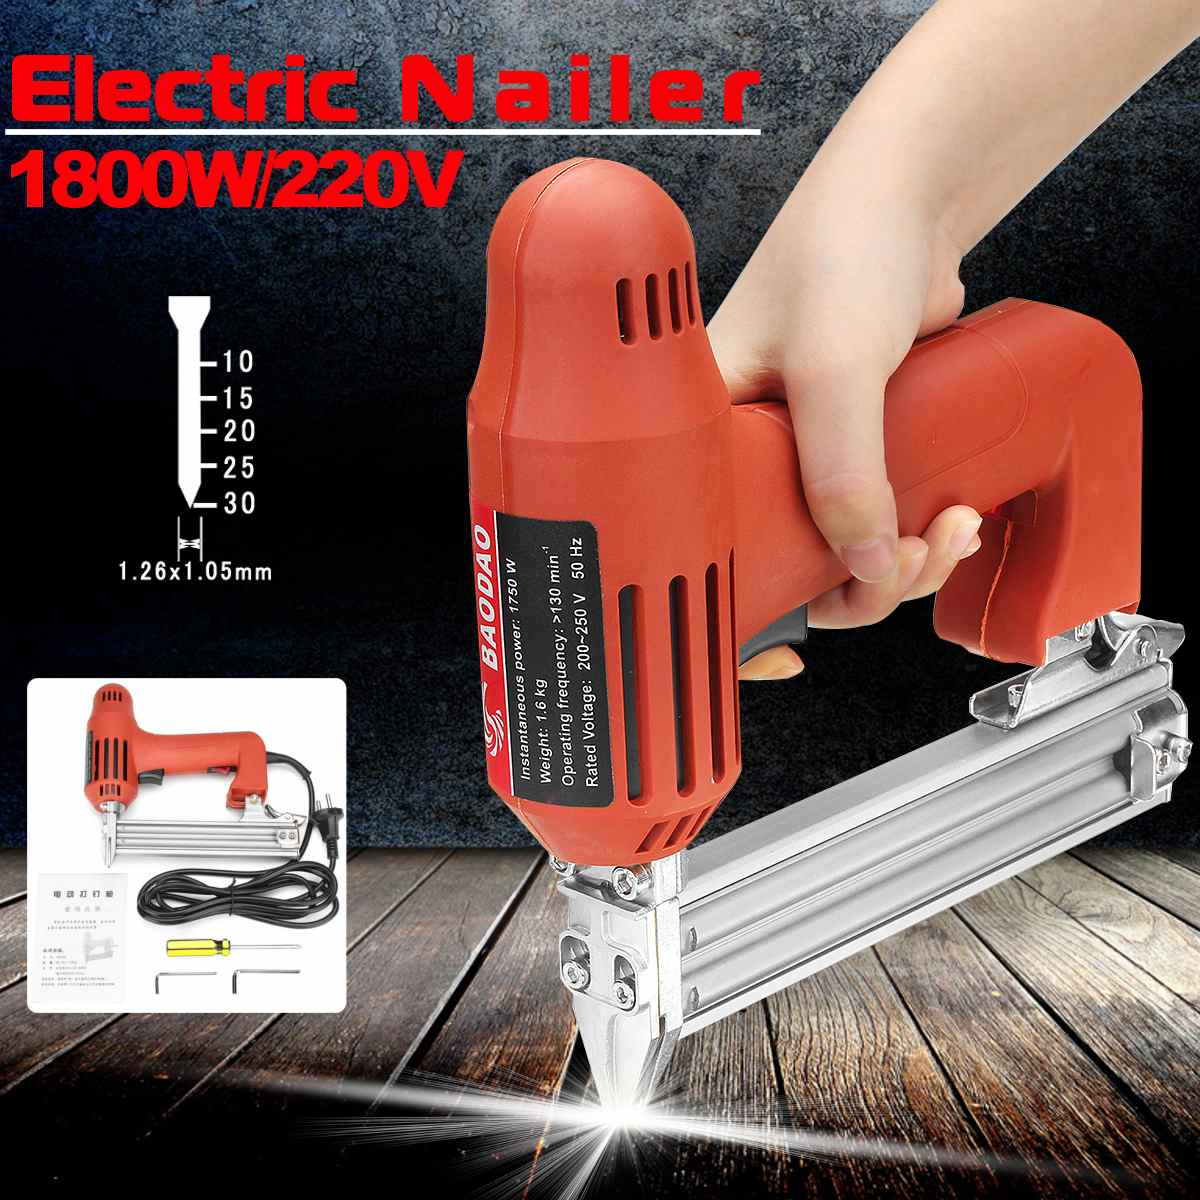 10-30mm 220V 1800W Electric Nailer Straight Nail Staple Guns Woodworking Tool Light Weight Portable 60/min Firing Speed Rate10-30mm 220V 1800W Electric Nailer Straight Nail Staple Guns Woodworking Tool Light Weight Portable 60/min Firing Speed Rate